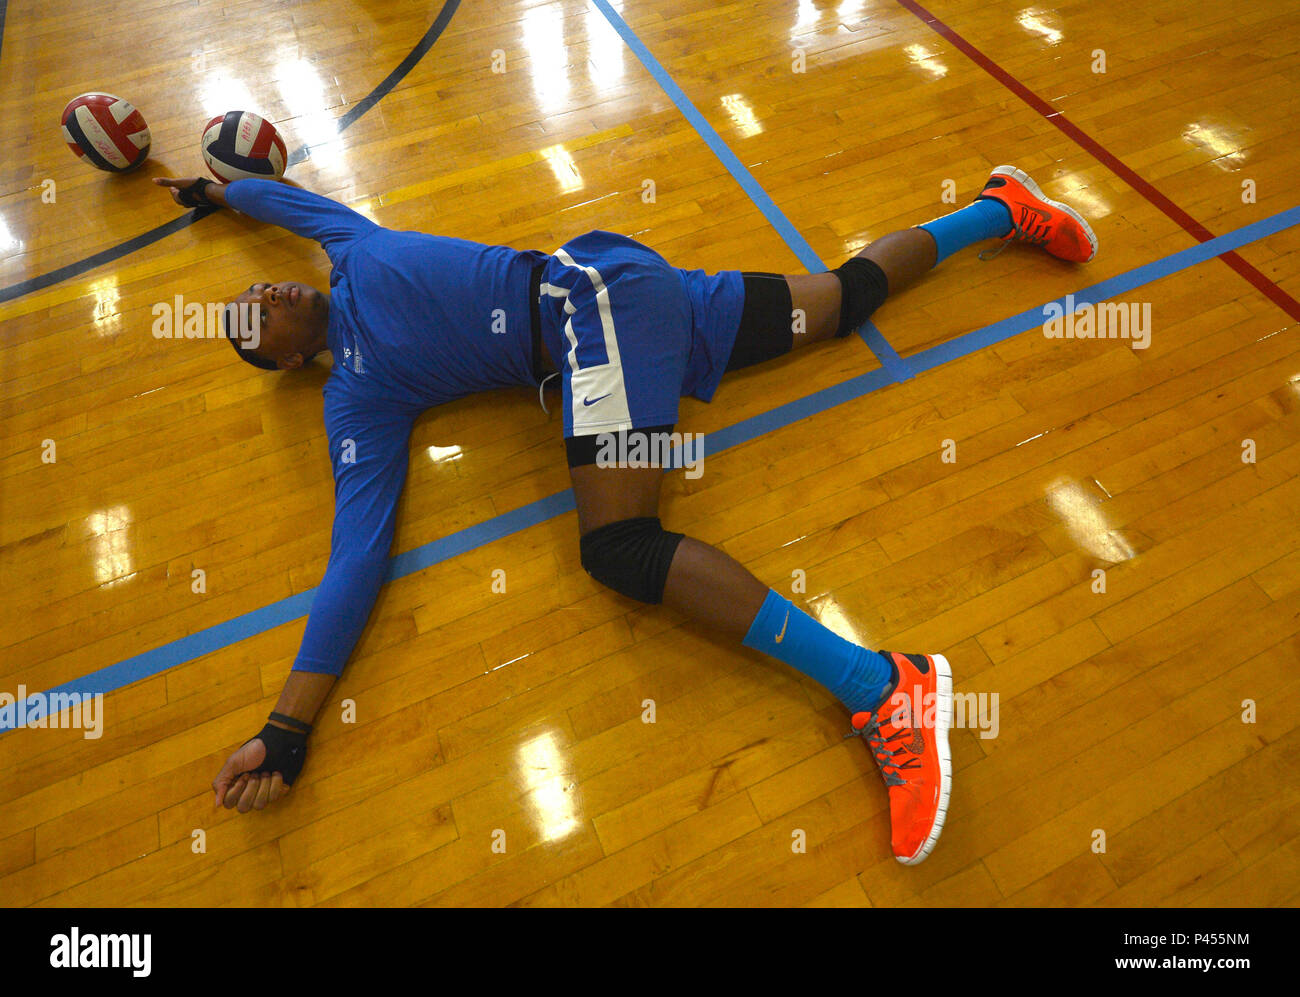 Cycling Stretches Stock Photos & Cycling Stretches Stock Images - Alamy